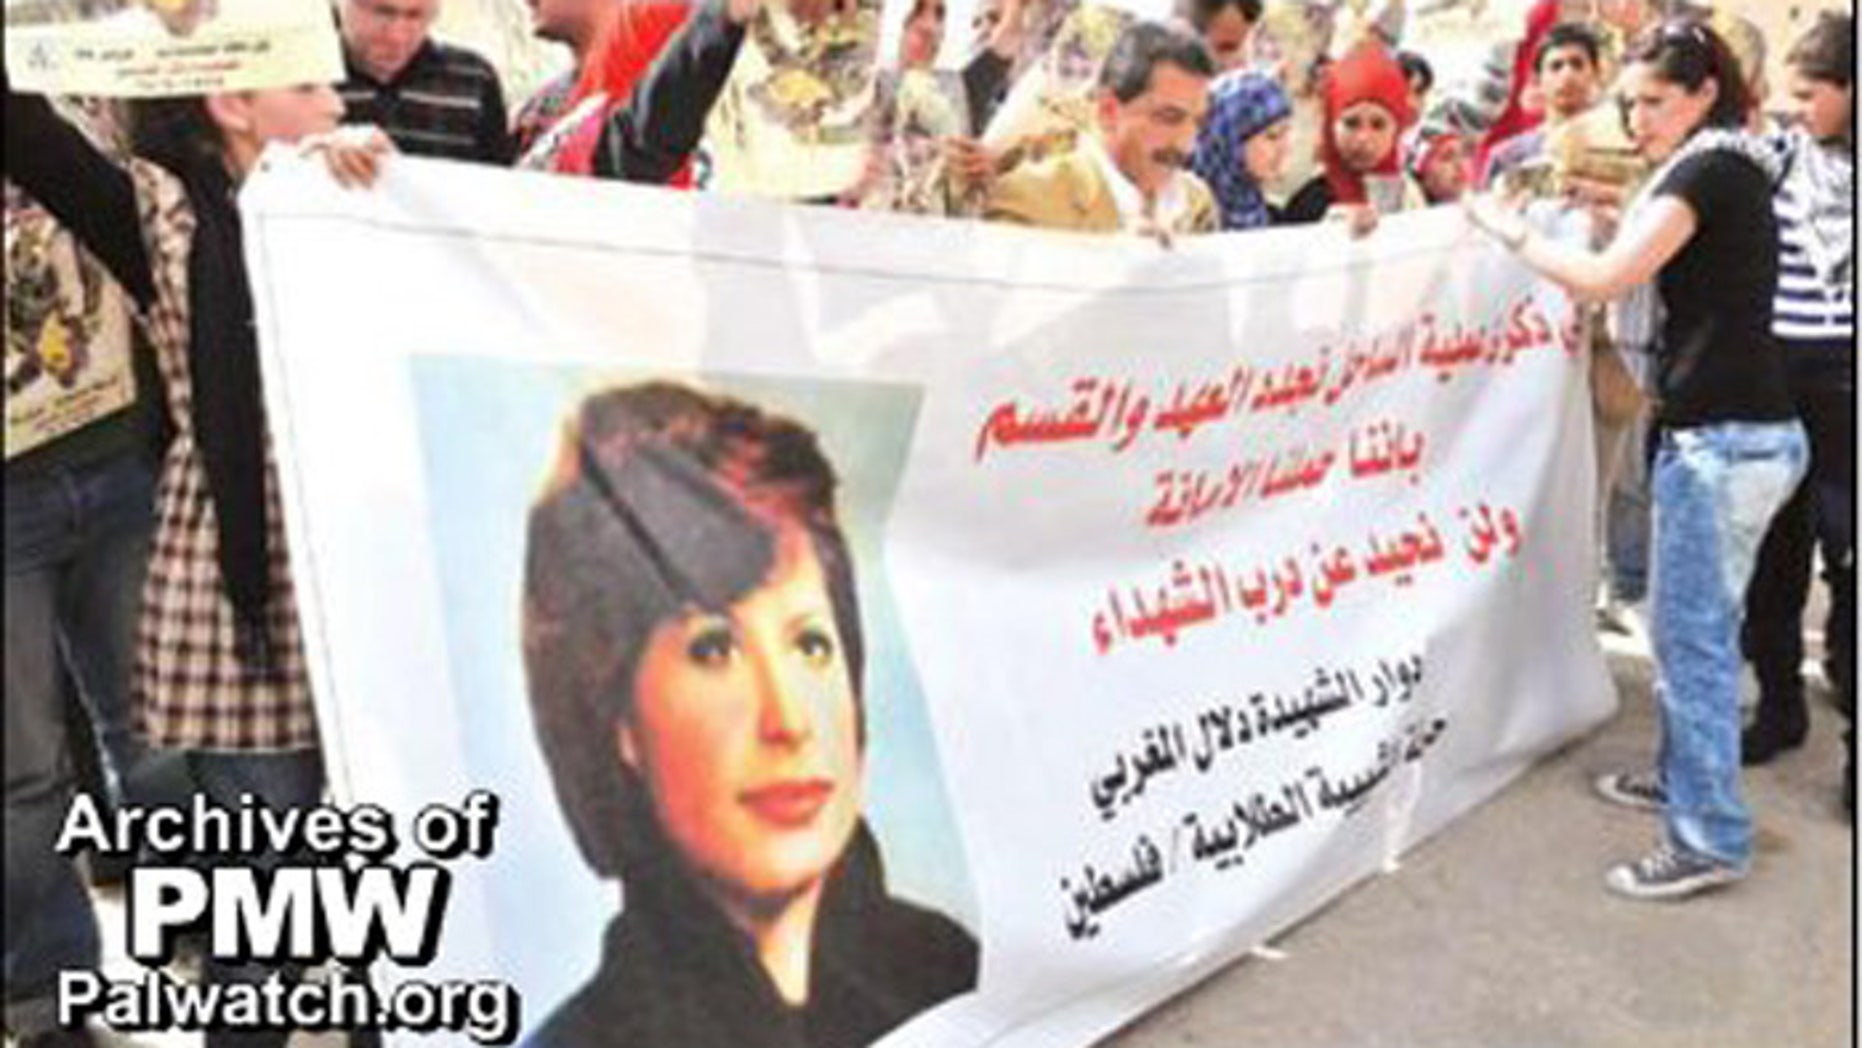 Dalal Mughrabi is a heroine to Palestinians because she led a suicide attack that killed 38 Israelis, including 13 children.